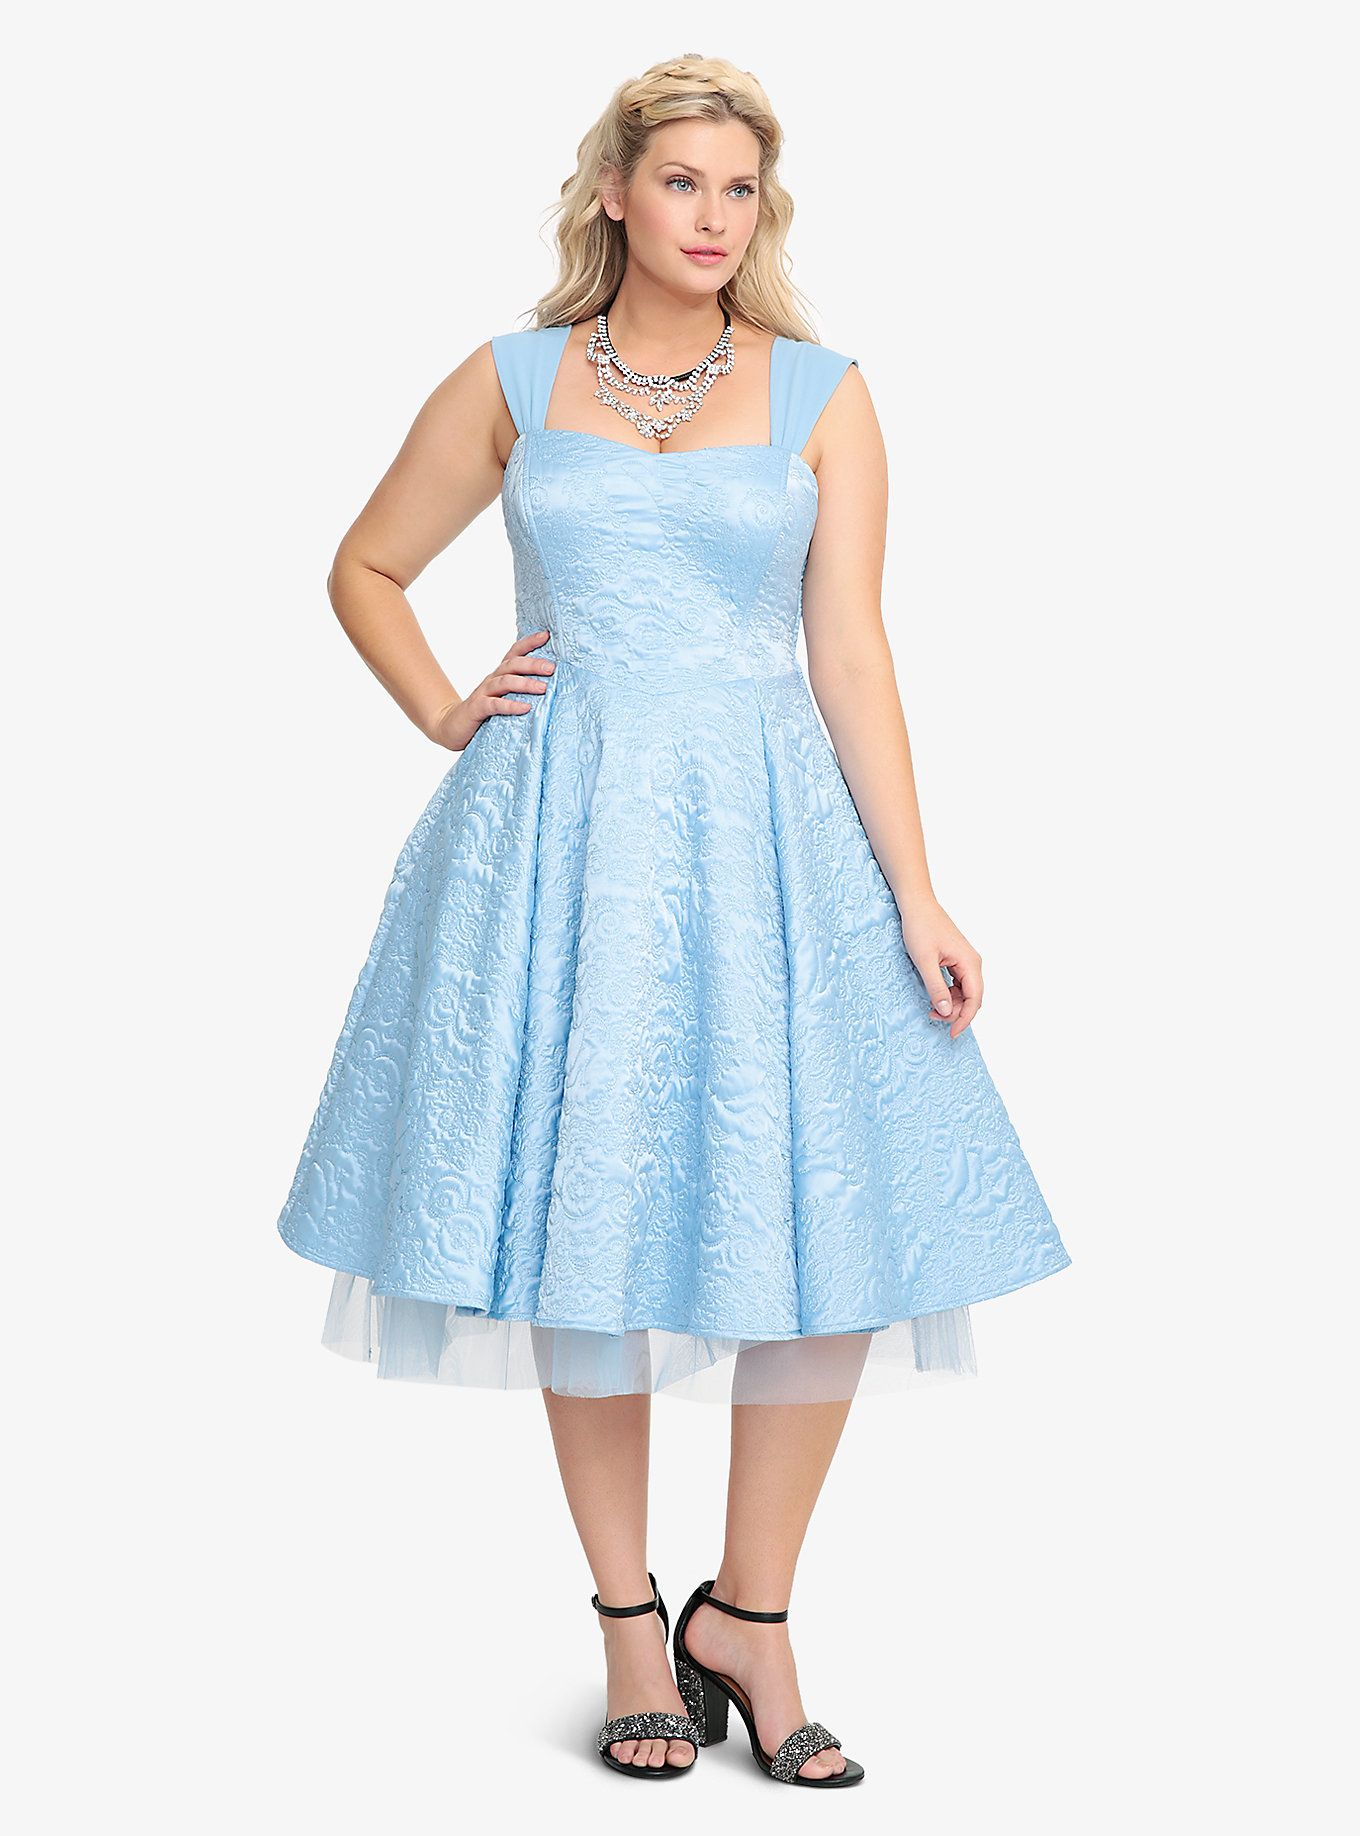 746f904914be6 Disney Cinderella Collection Party Dress